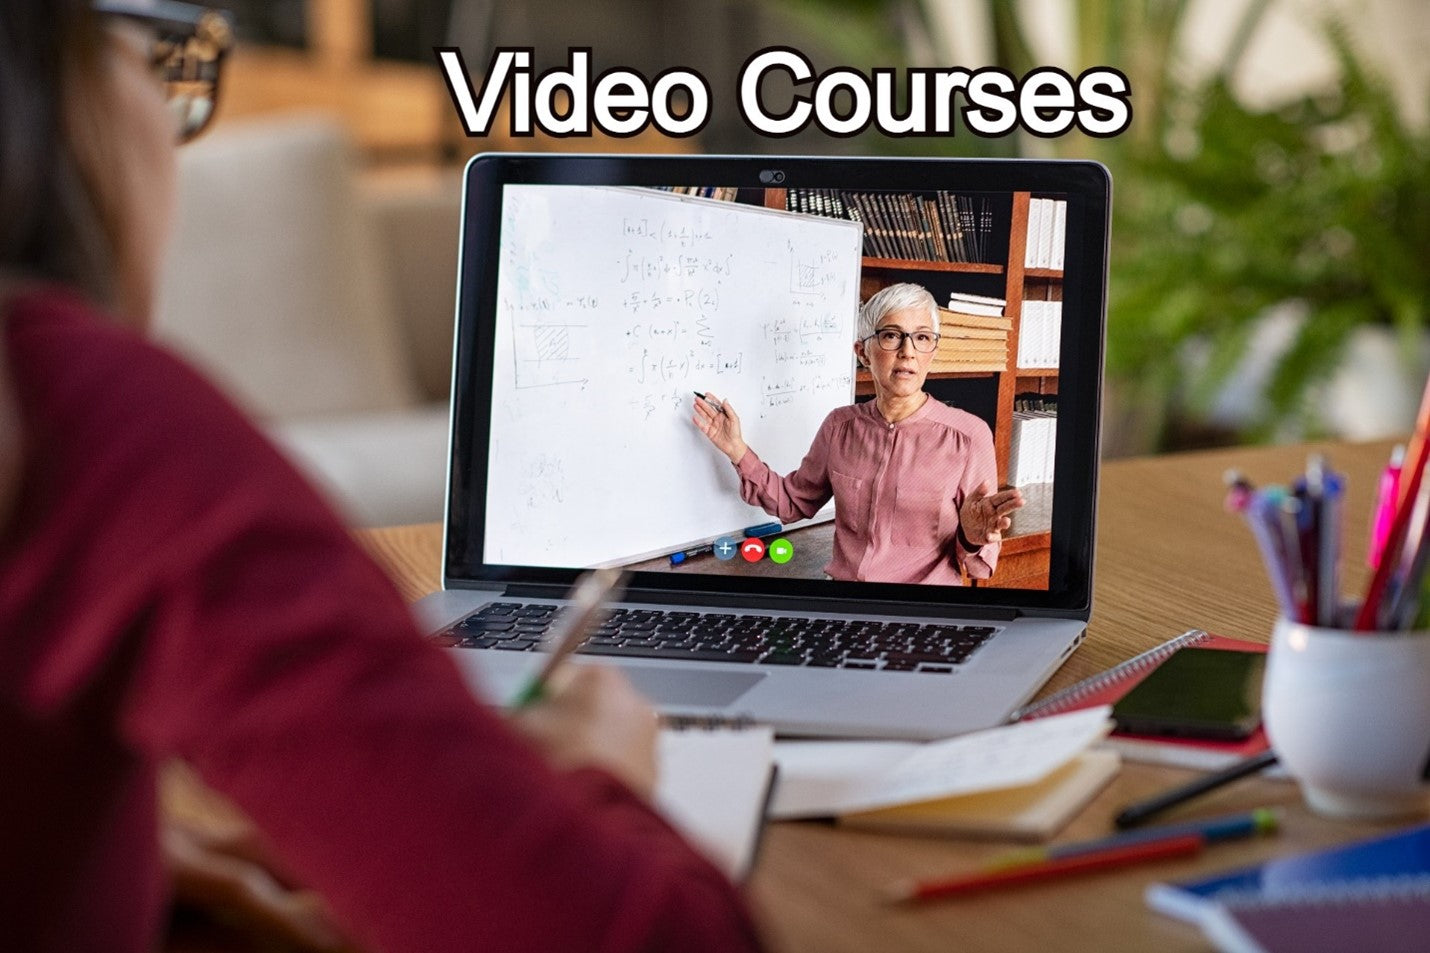 Why are Video Courses so helpful?